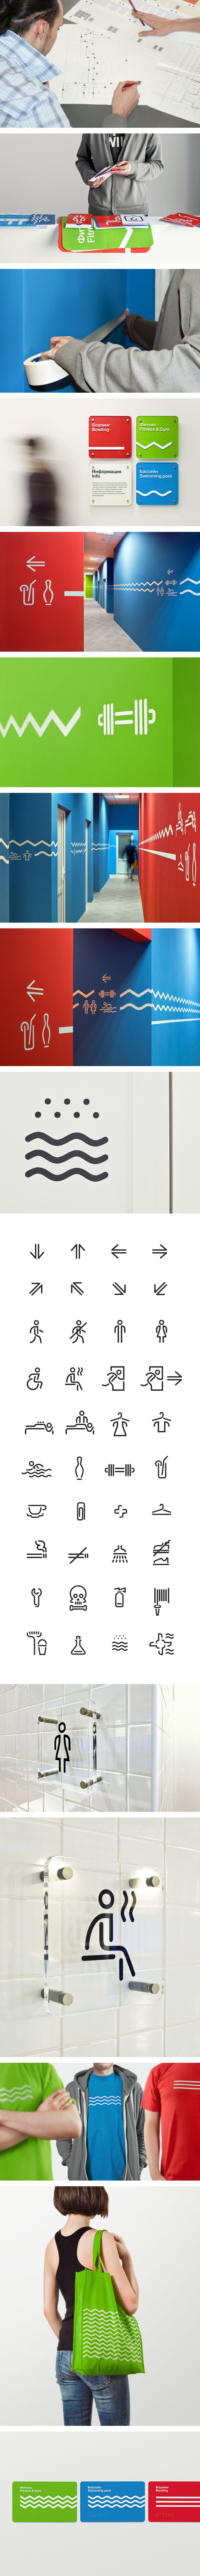 Ampoule laureen luhn design graphique - Find This Pin And More On Design Espace